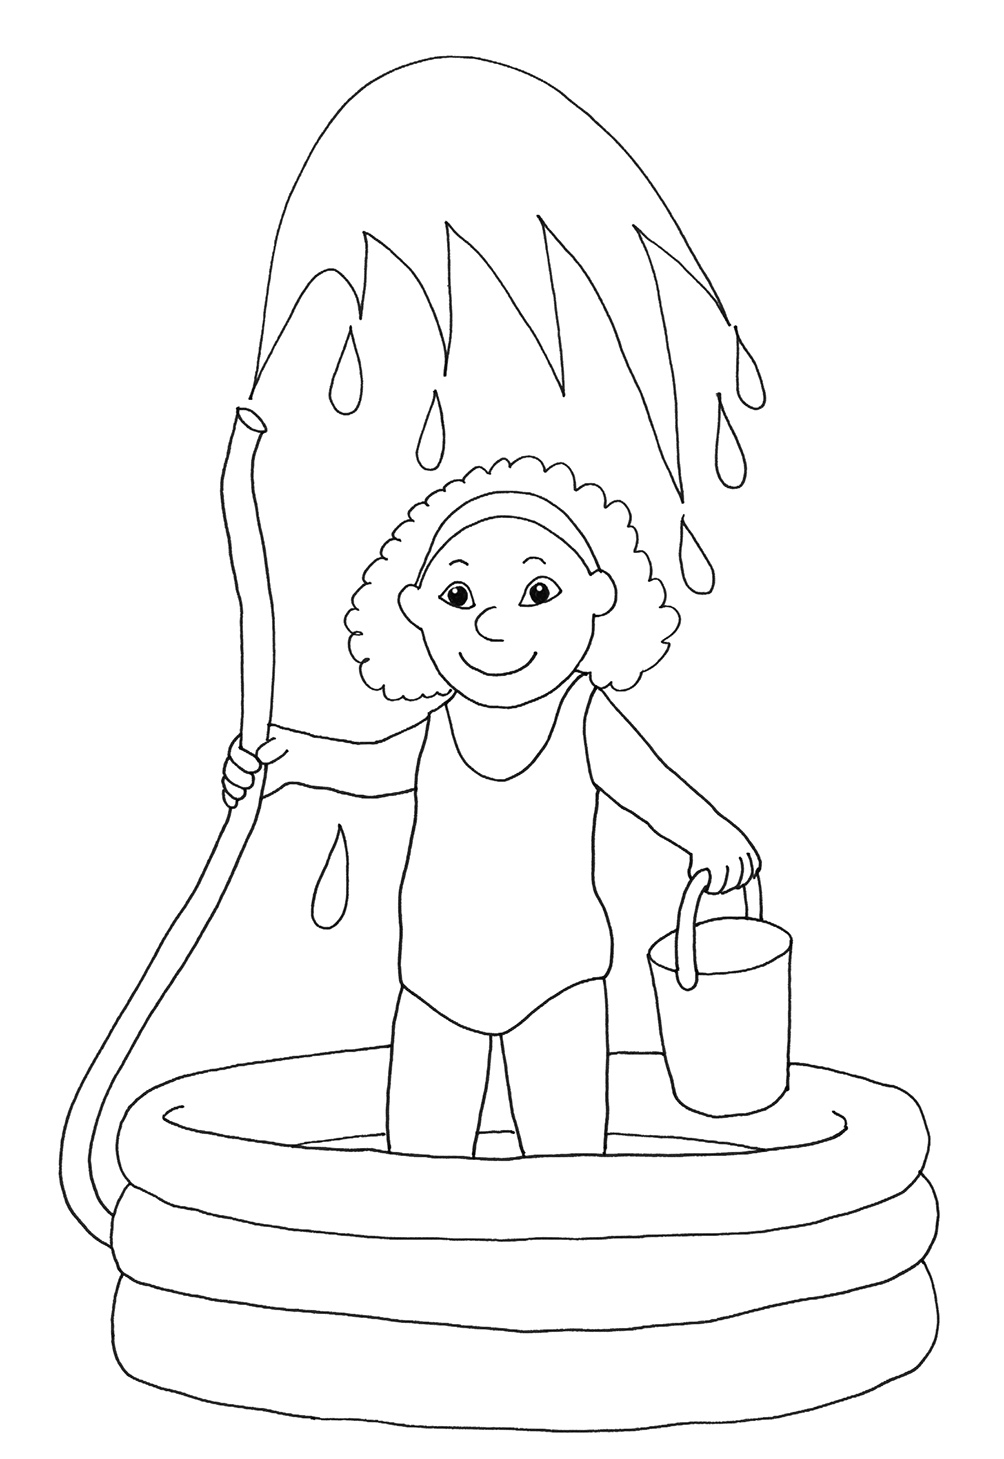 Summer Coloring Pages to Print